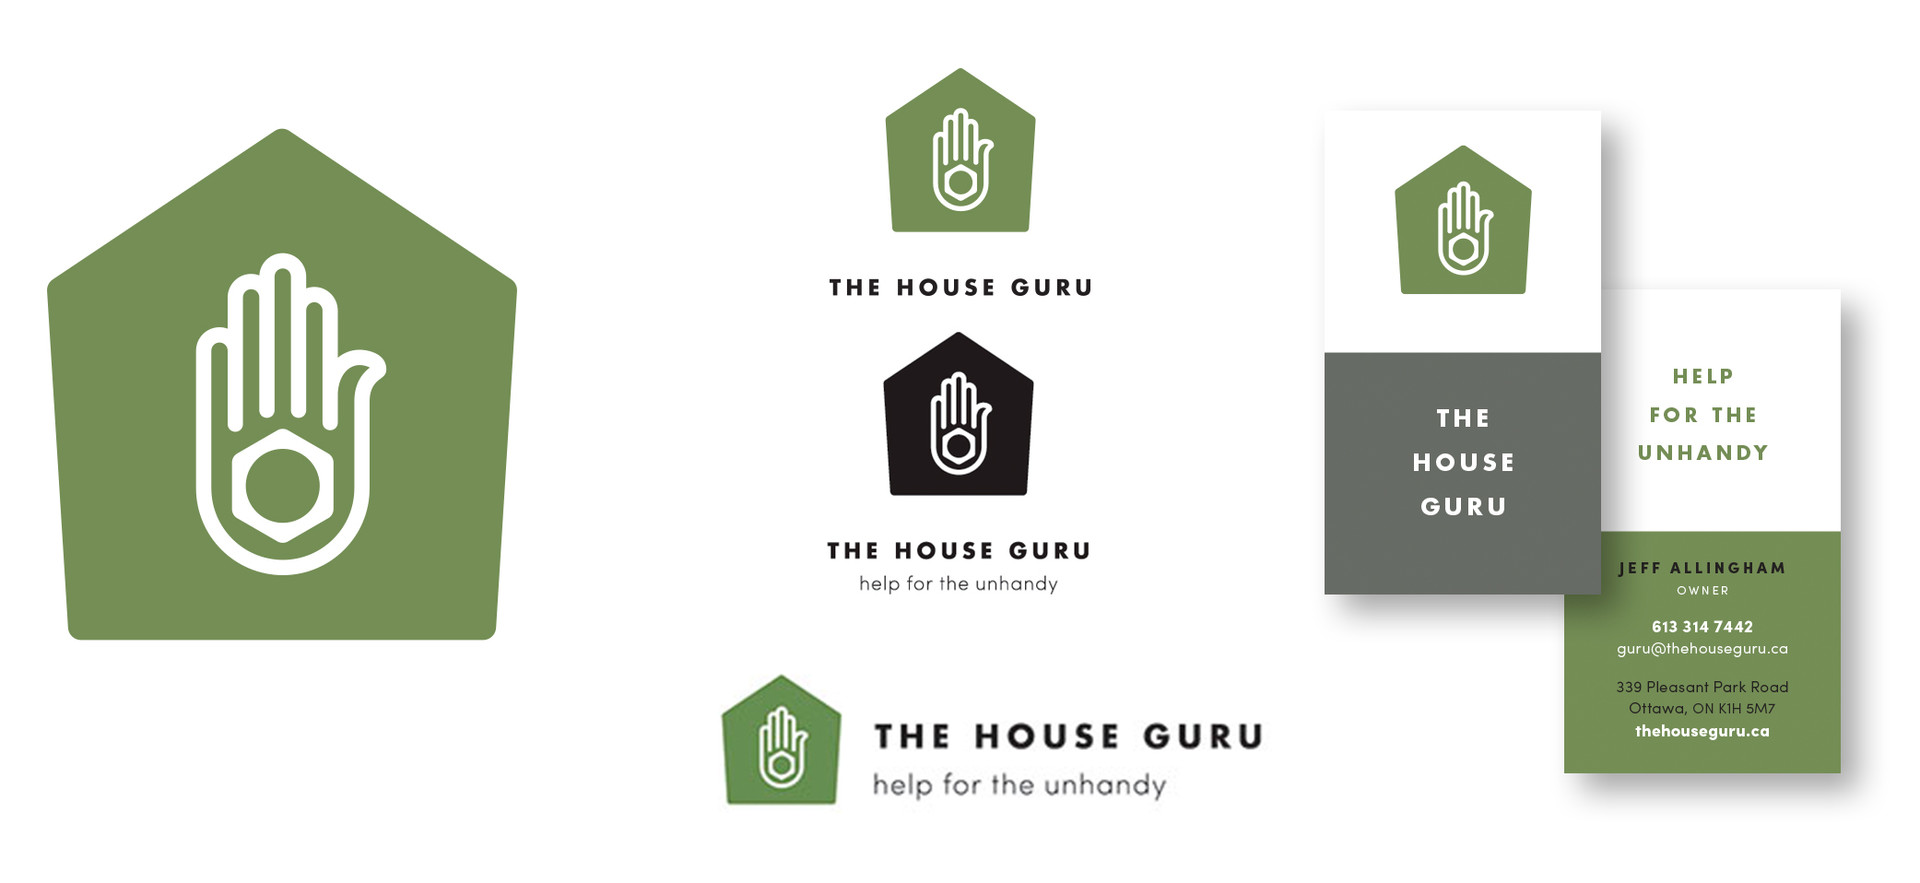 The House Guru brand & applications